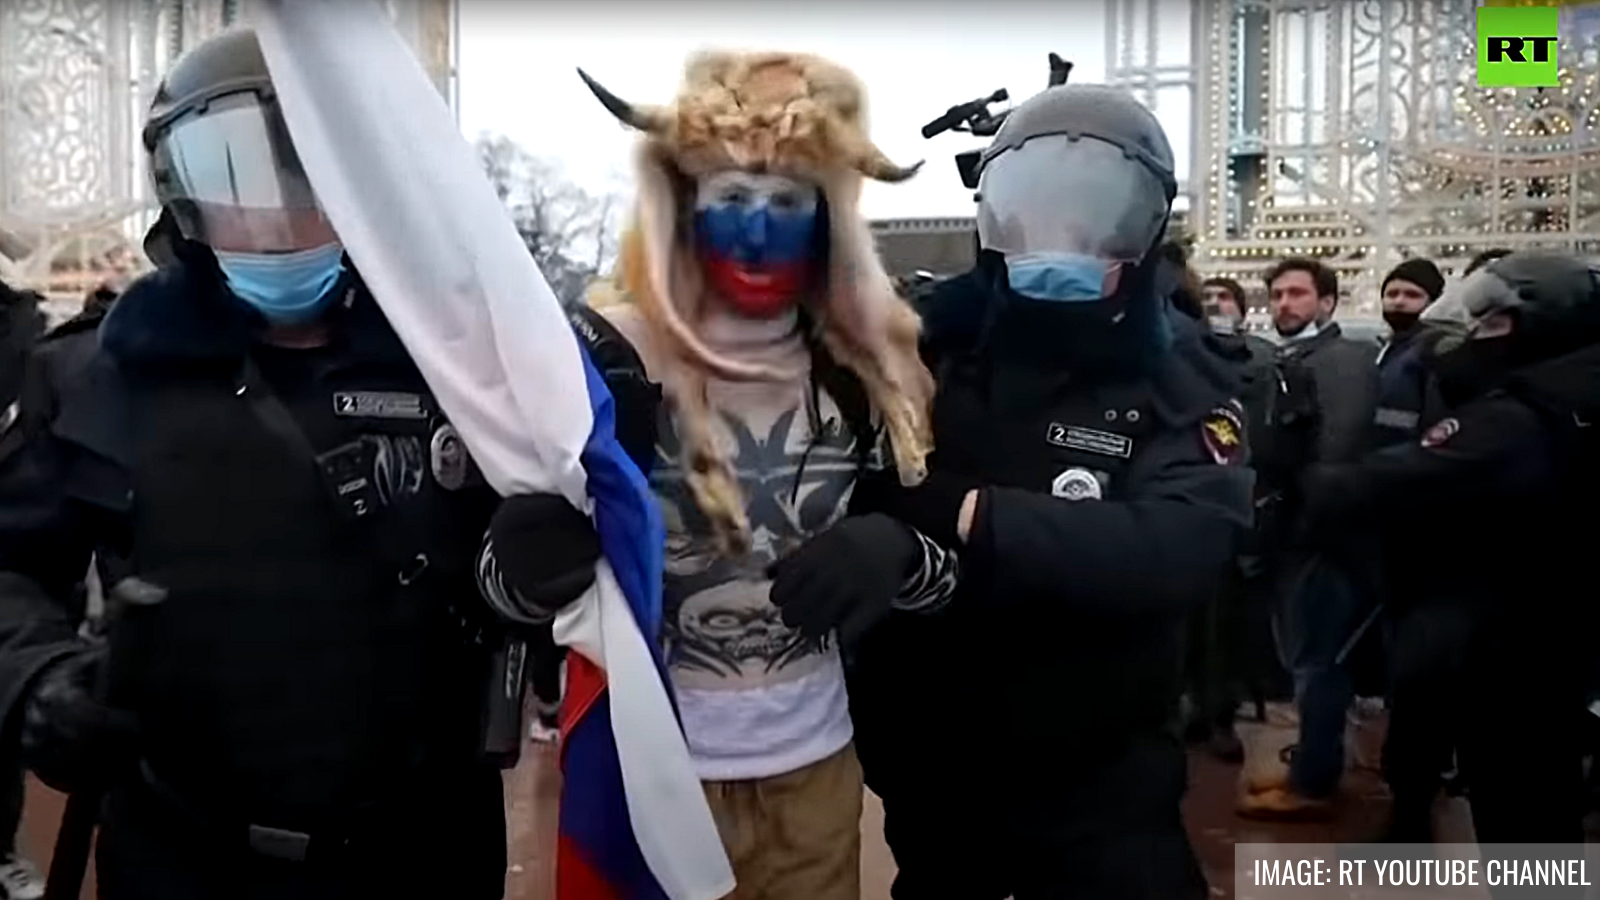 Detained protester in Moscow. Image: RT YouTube channel.